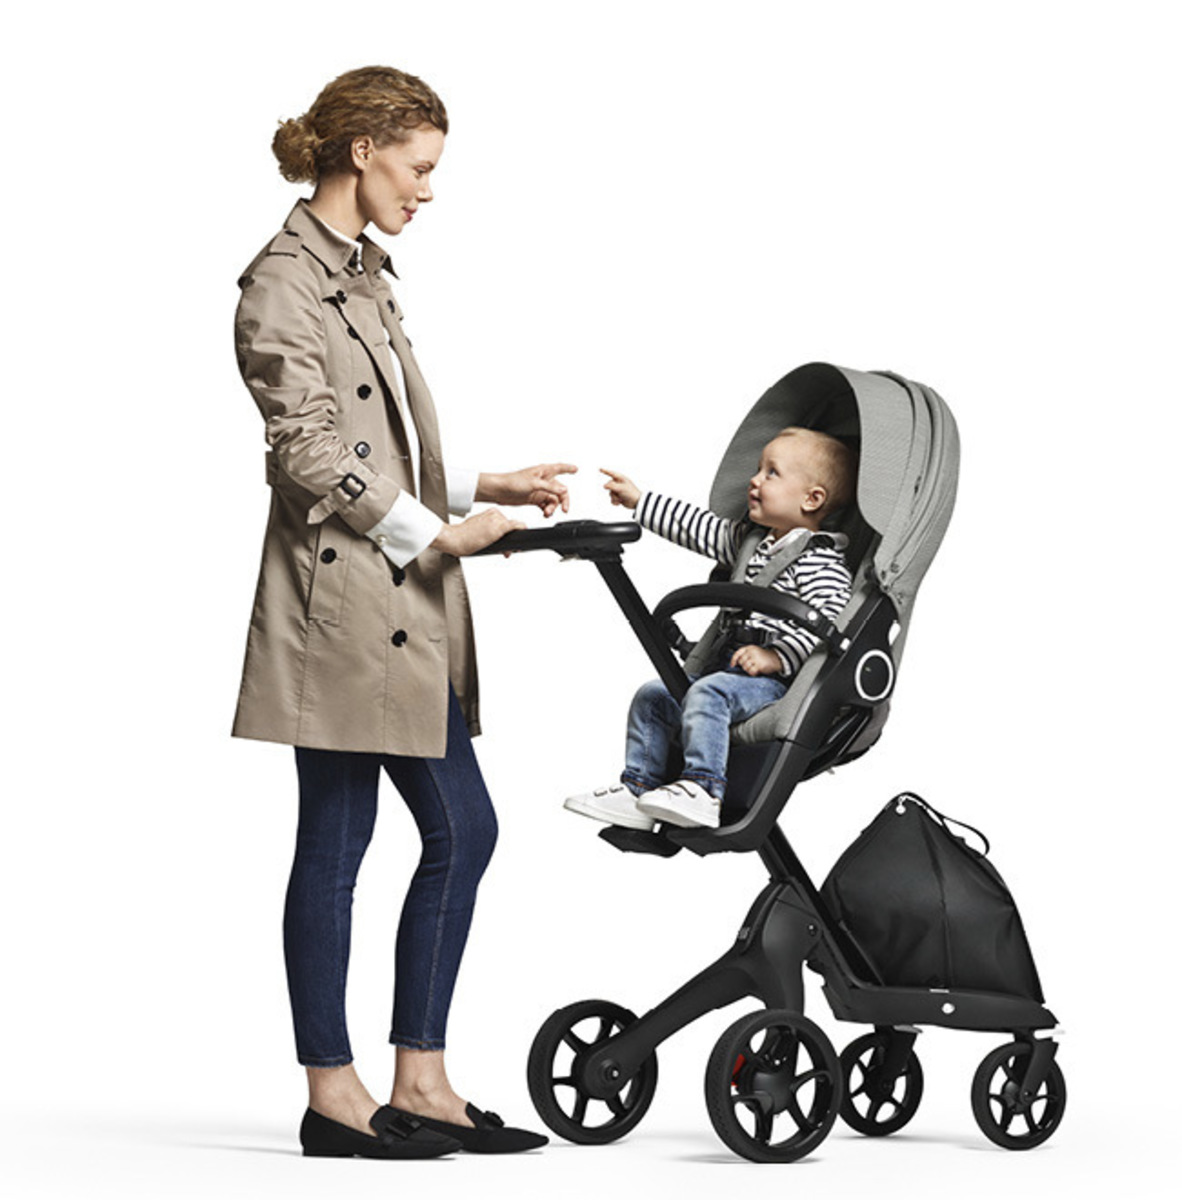 Xplory is loved by both parents and children - See Xplory in Athleisure Marina Blue